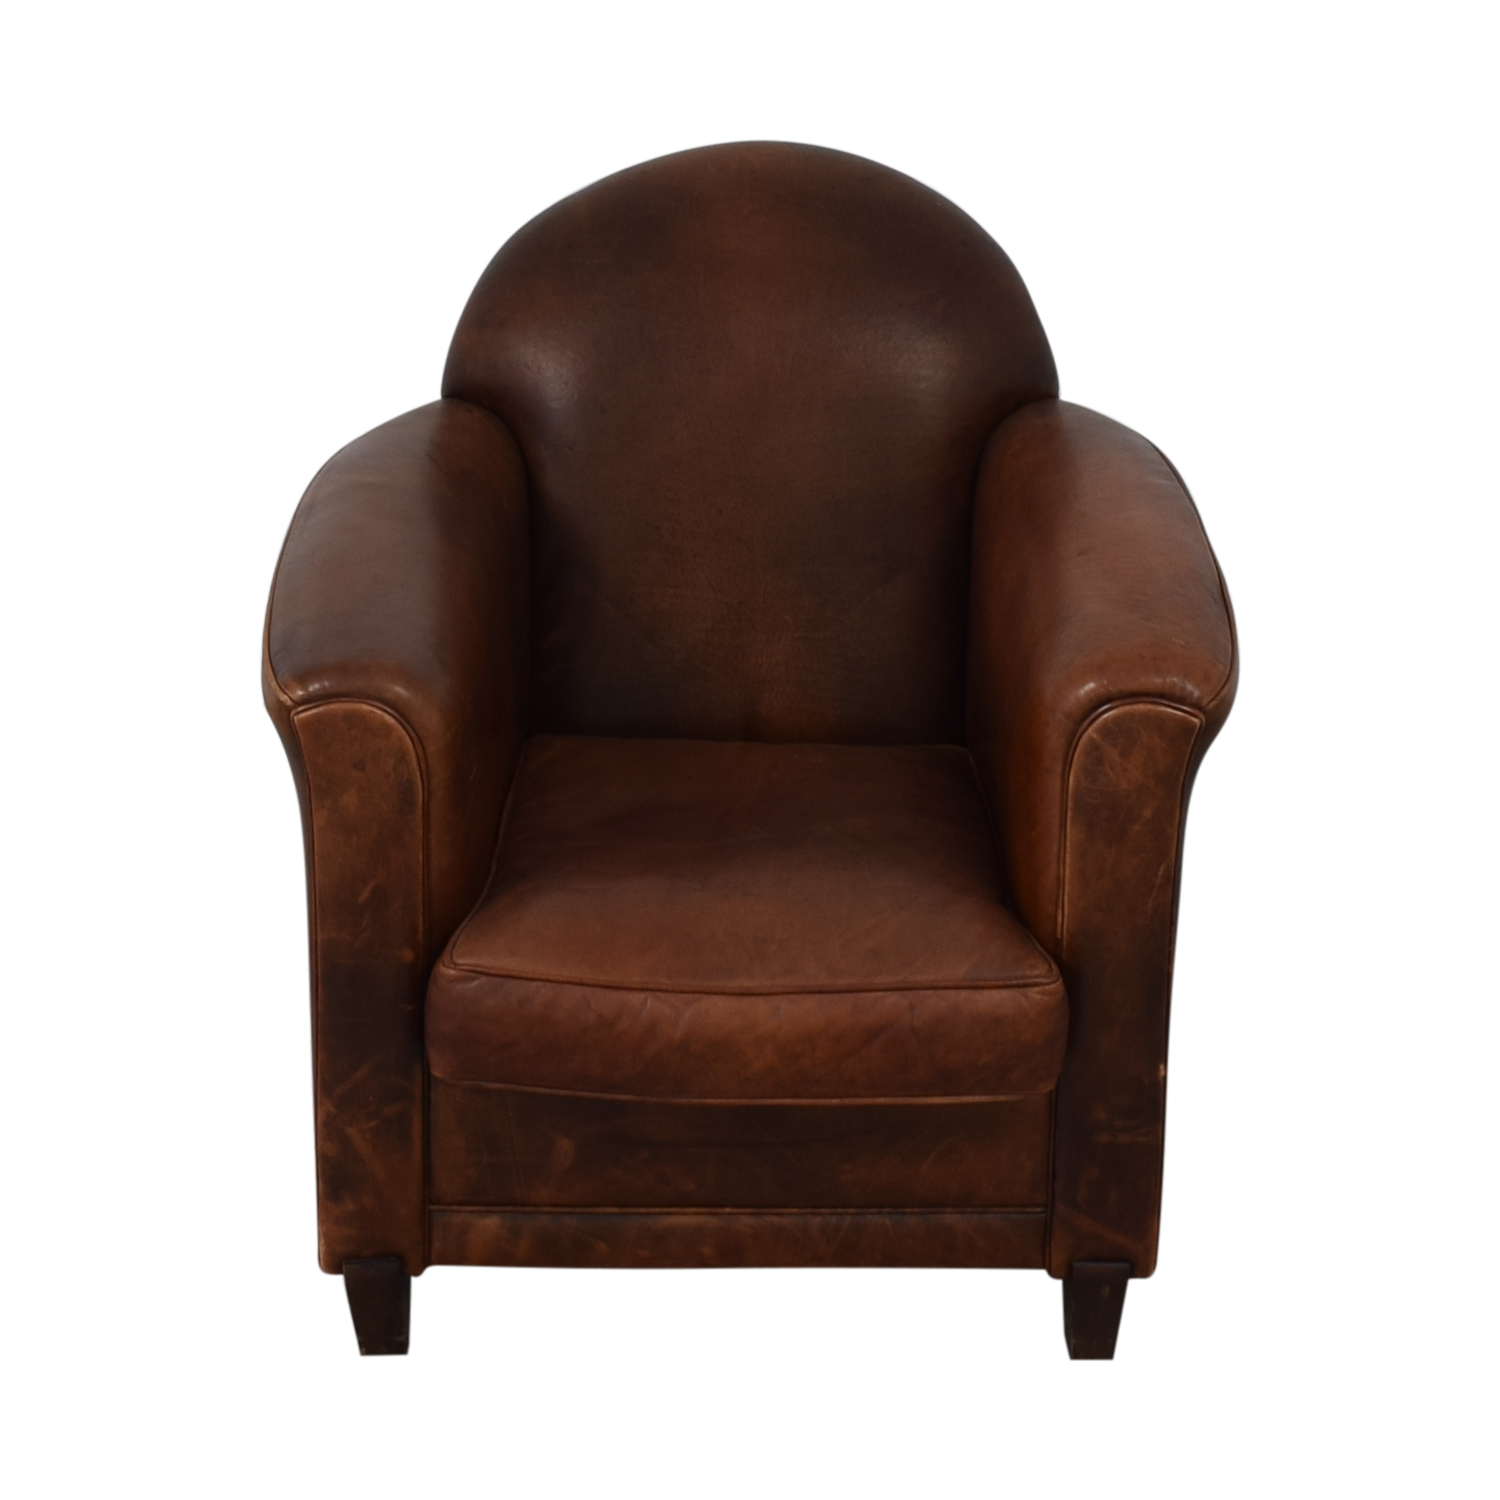 French Leather Club Chair / Chairs